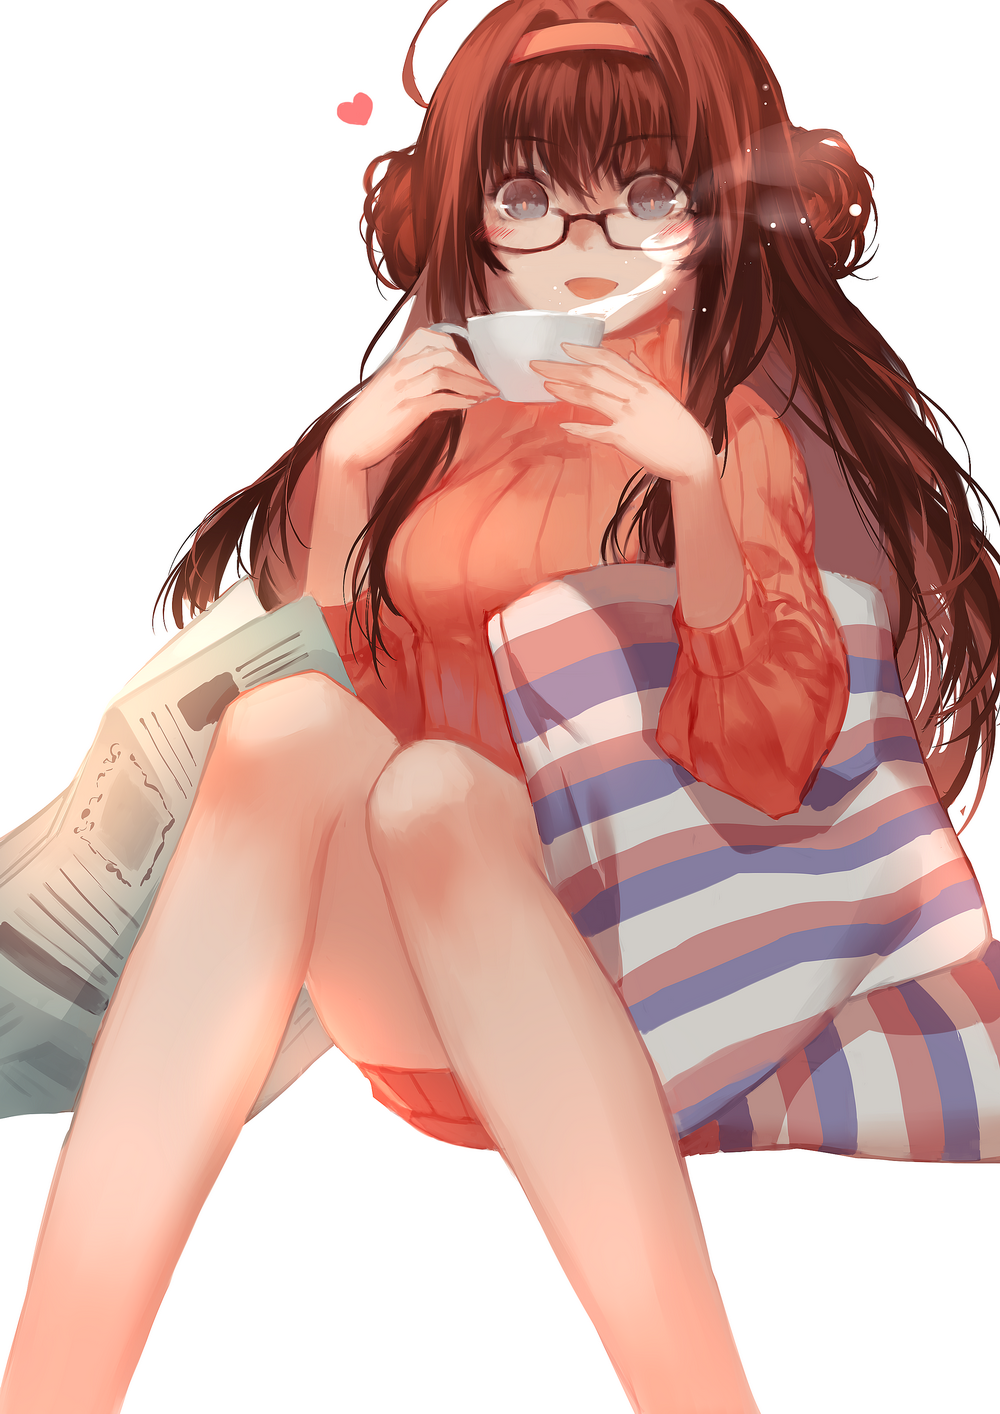 1girl ahoge alternate_costume bespectacled blue_eyes blush cup double_bun glasses hairband heart highres joseph_lee kantai_collection kongou_(kantai_collection) long_hair looking_at_viewer newspaper open_mouth pillow ribbed_sweater solo sweater teacup white_background